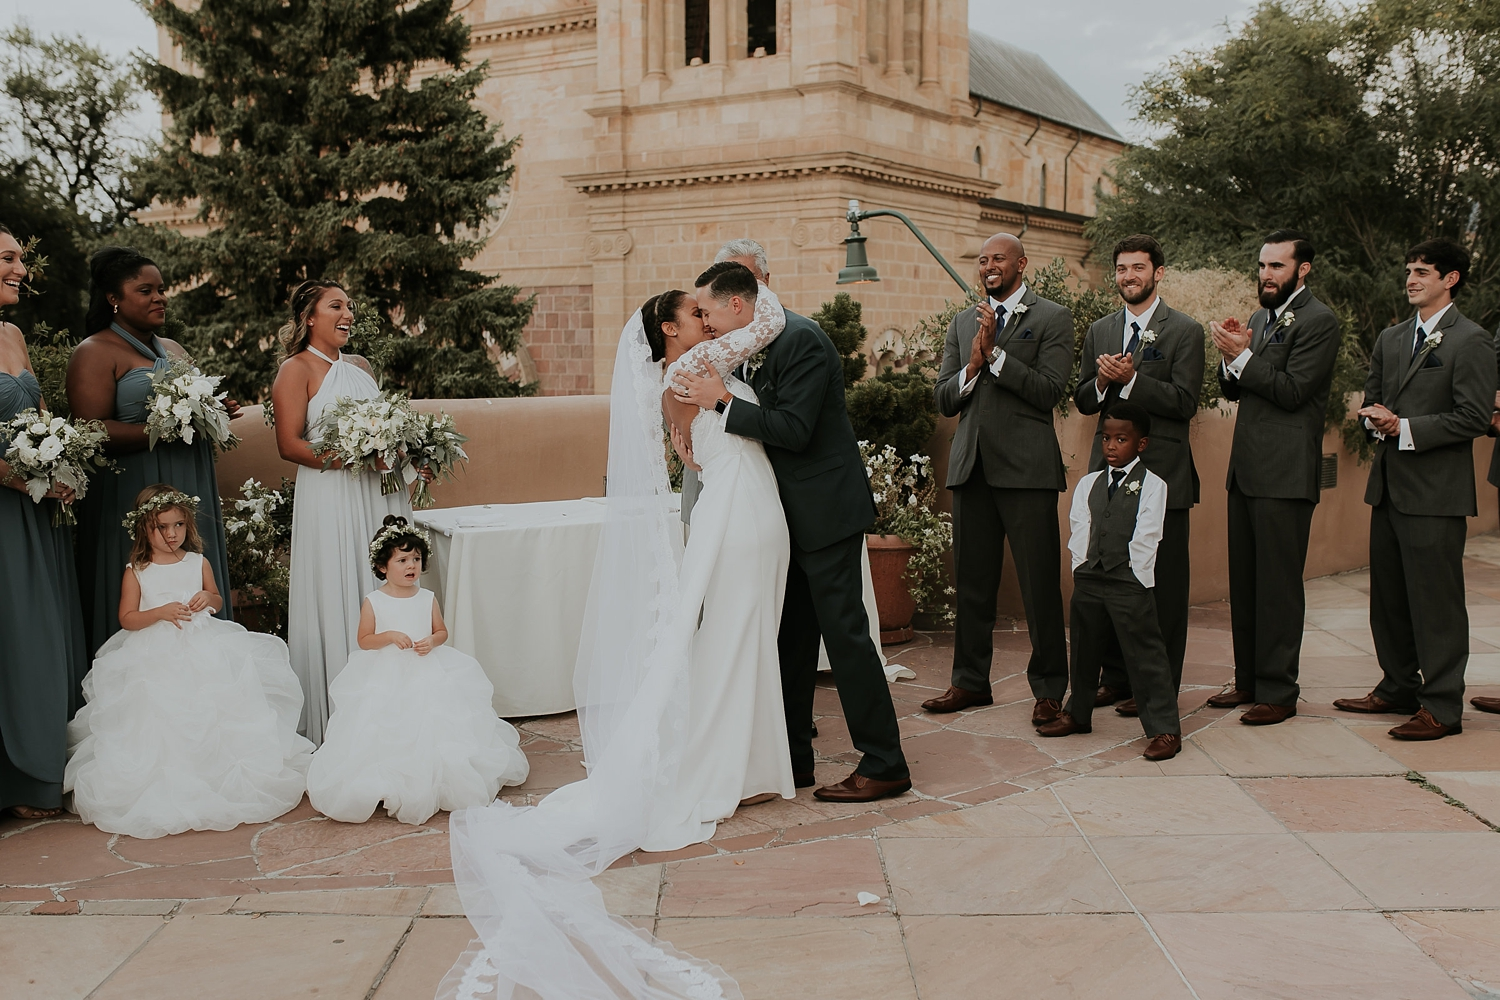 Alicia+lucia+photography+-+albuquerque+wedding+photographer+-+santa+fe+wedding+photography+-+new+mexico+wedding+photographer+-+new+mexico+engagement+-+la+fonda+new+mexico+wedding+-+la+fonda+fall+wedding_0050.jpg